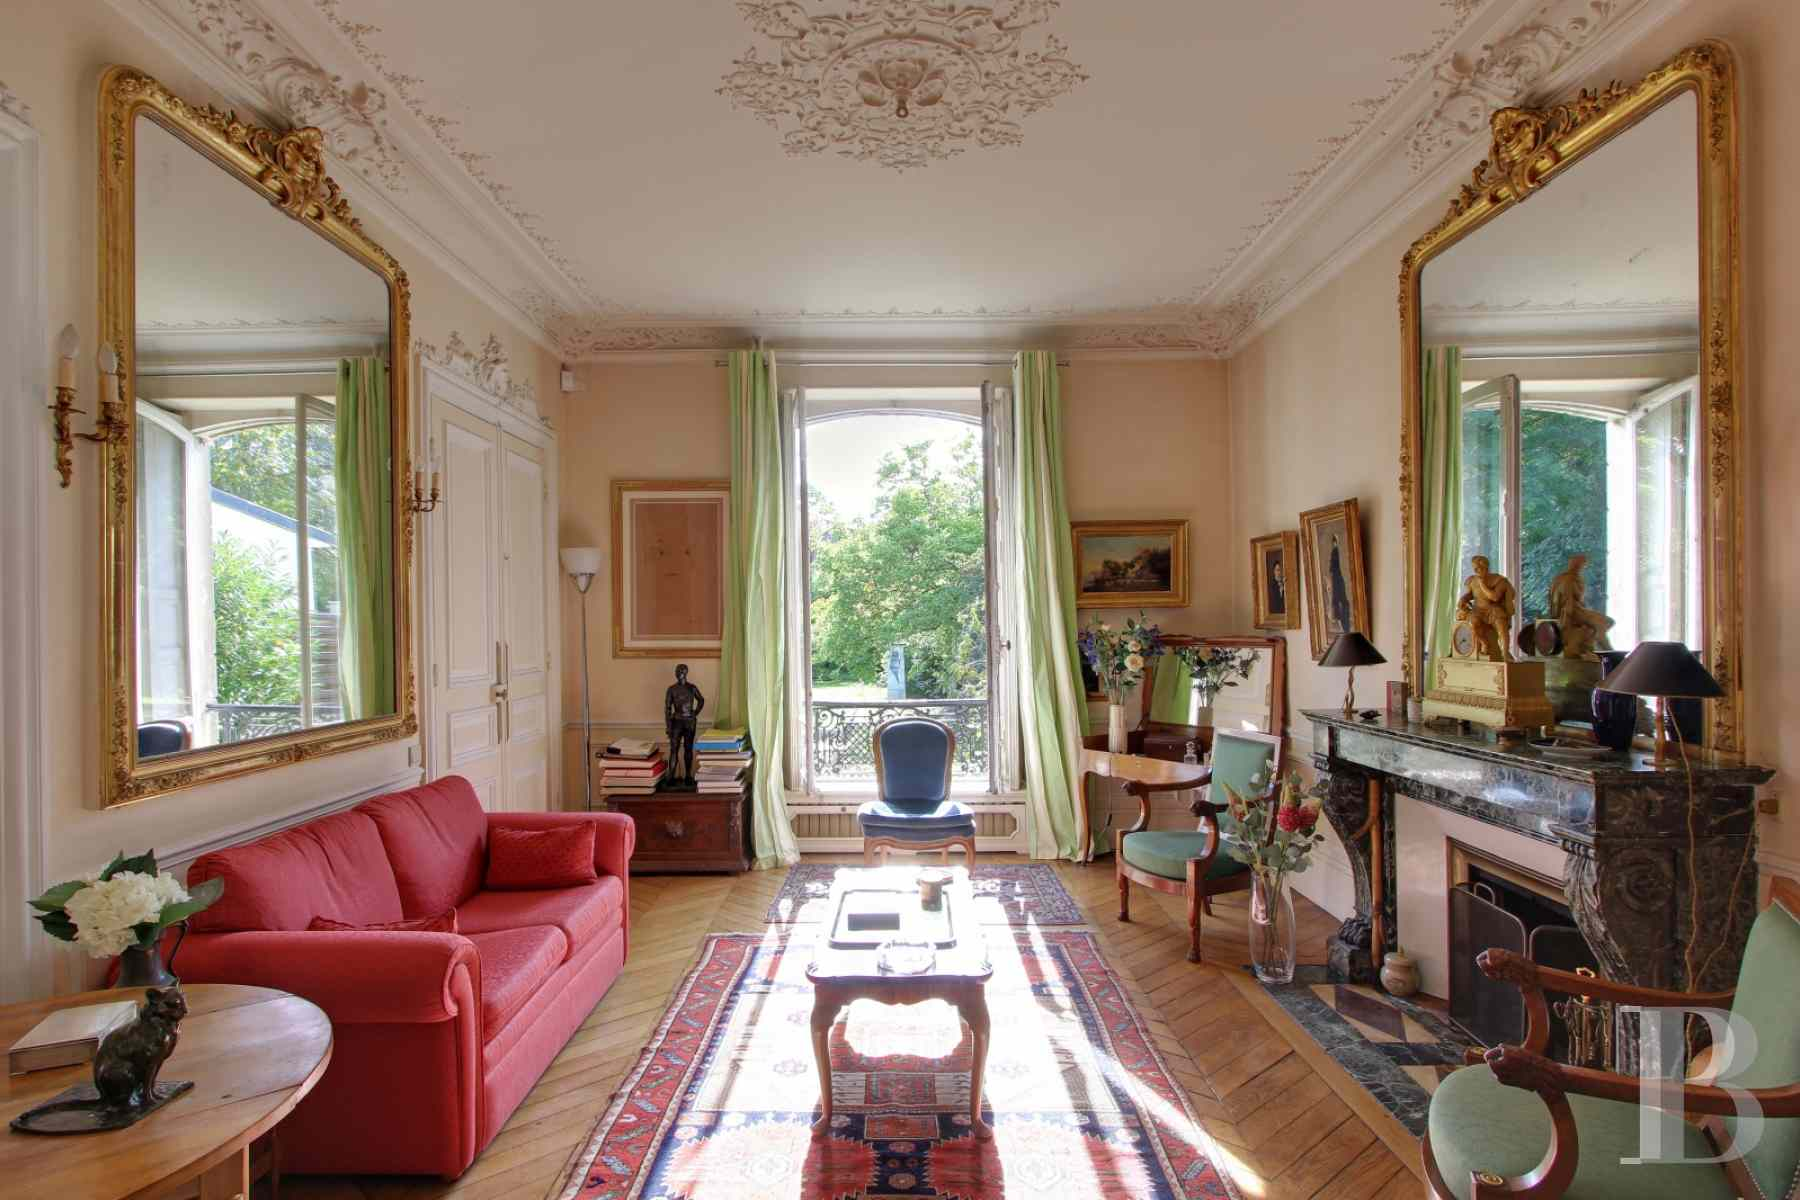 property for sale France paris antony property - 7 zoom